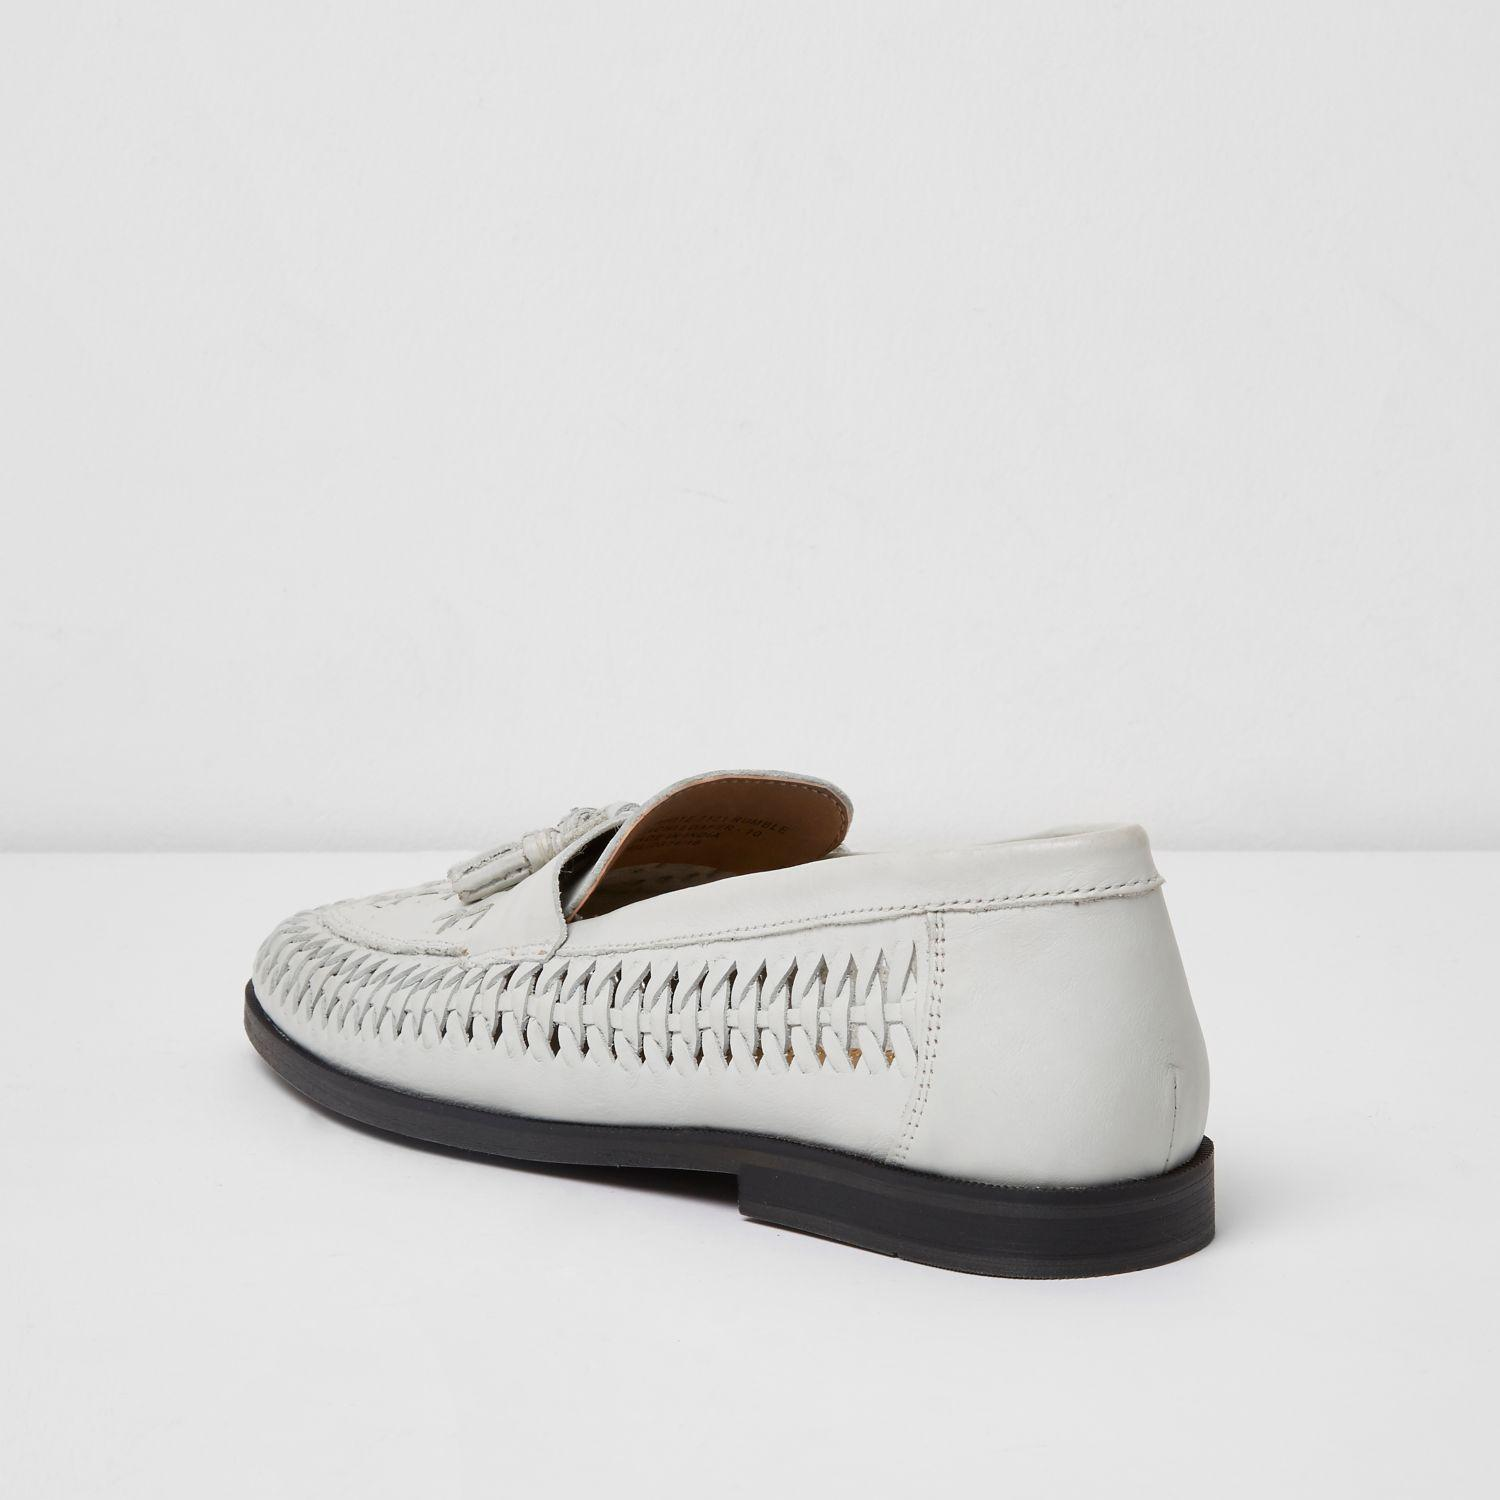 River Island White Leather Woven Tassel Loafers for Men